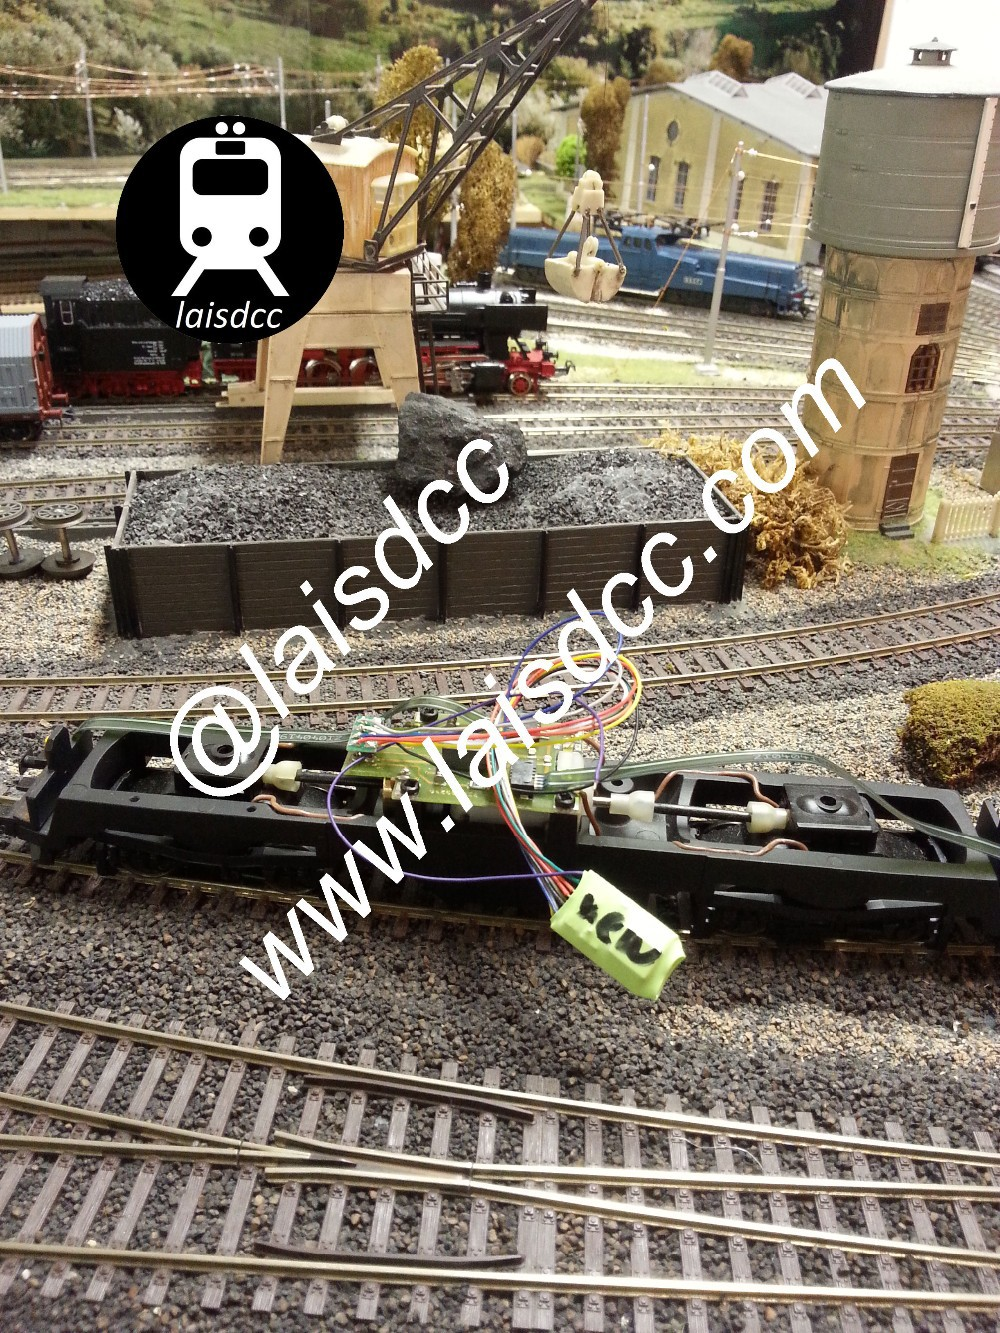 Nem652 Dcc Loco Decoder For Ho N Scale Model Train 860021 With Railroad Wiring How To Build A Layouts G Z S Stay Alive Wires Laisdcc Brand Pangu Series In Rc Trains From Toys Hobbies On